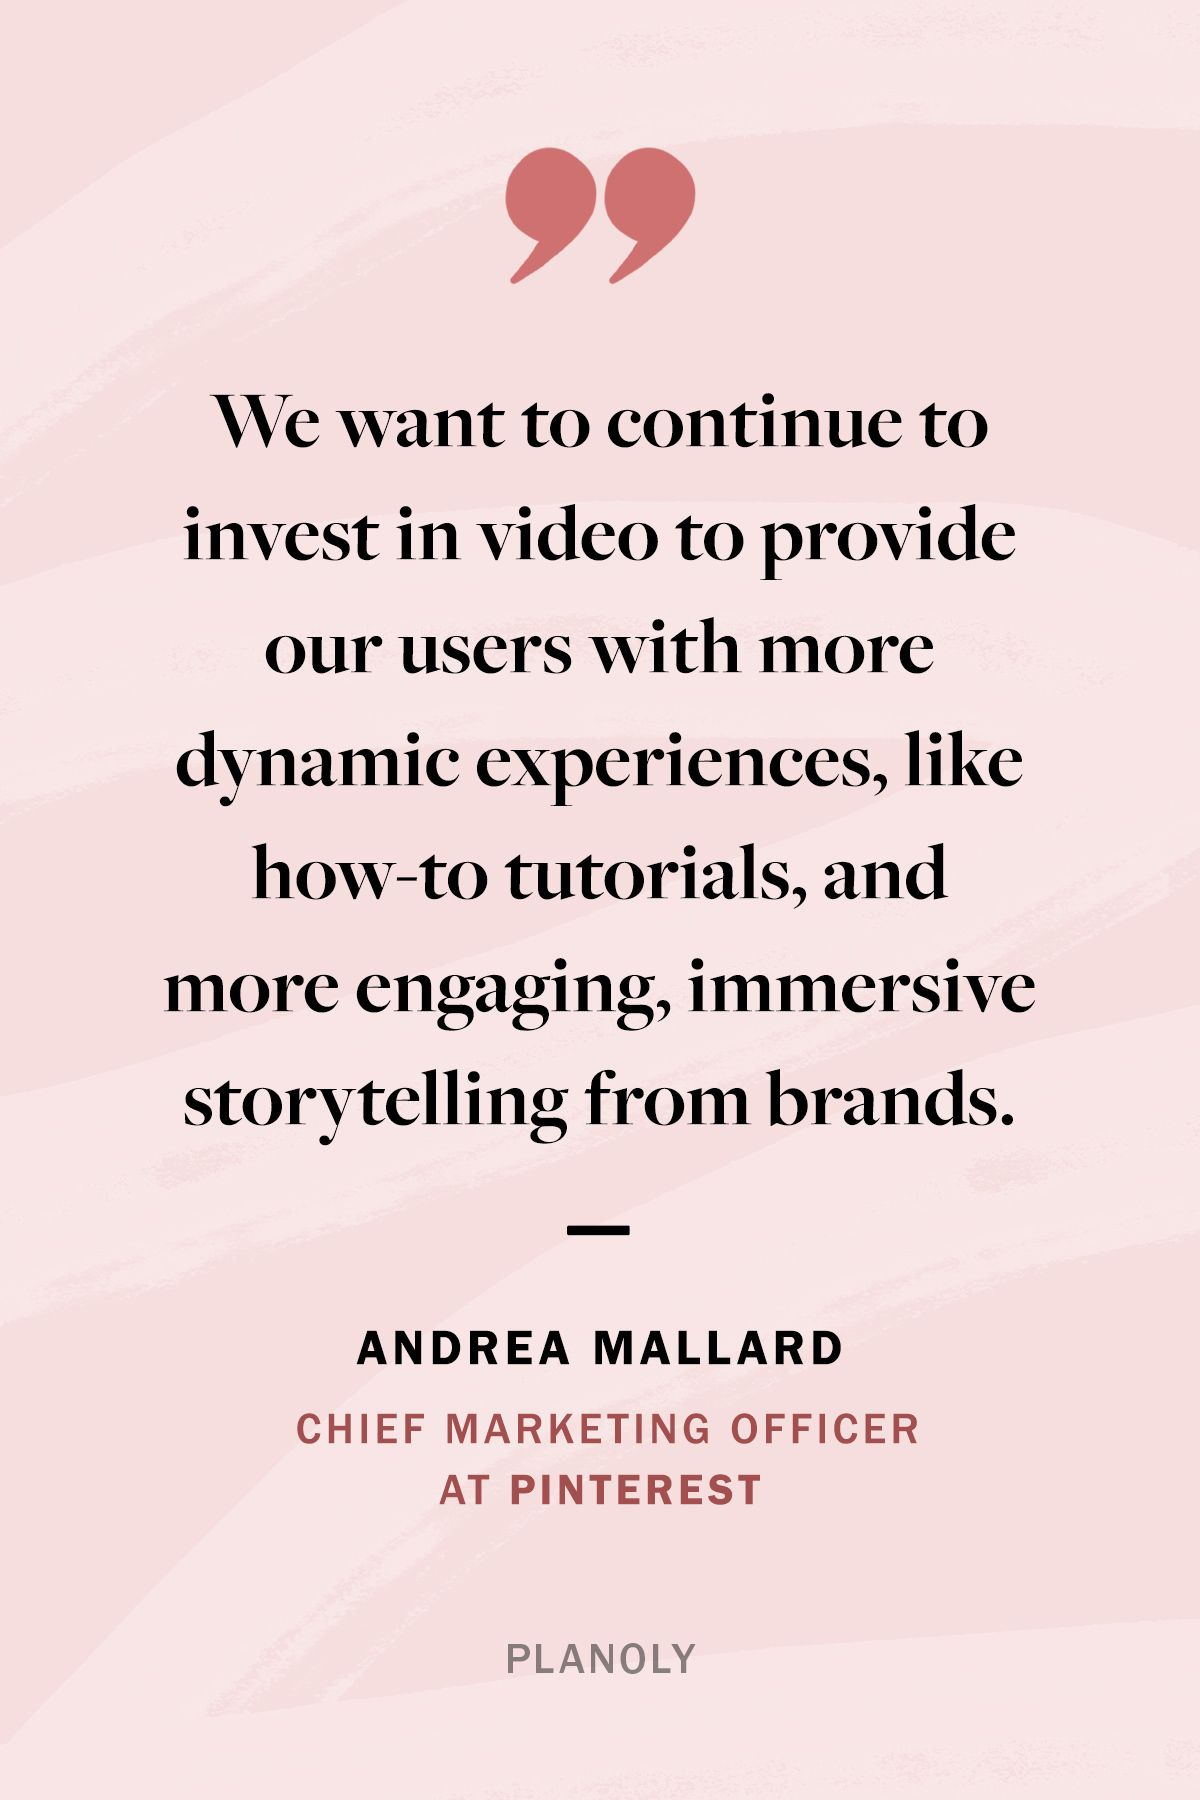 PLANOLY - Blog - Build Your Pinterest Video Strategy - Vertical - 1